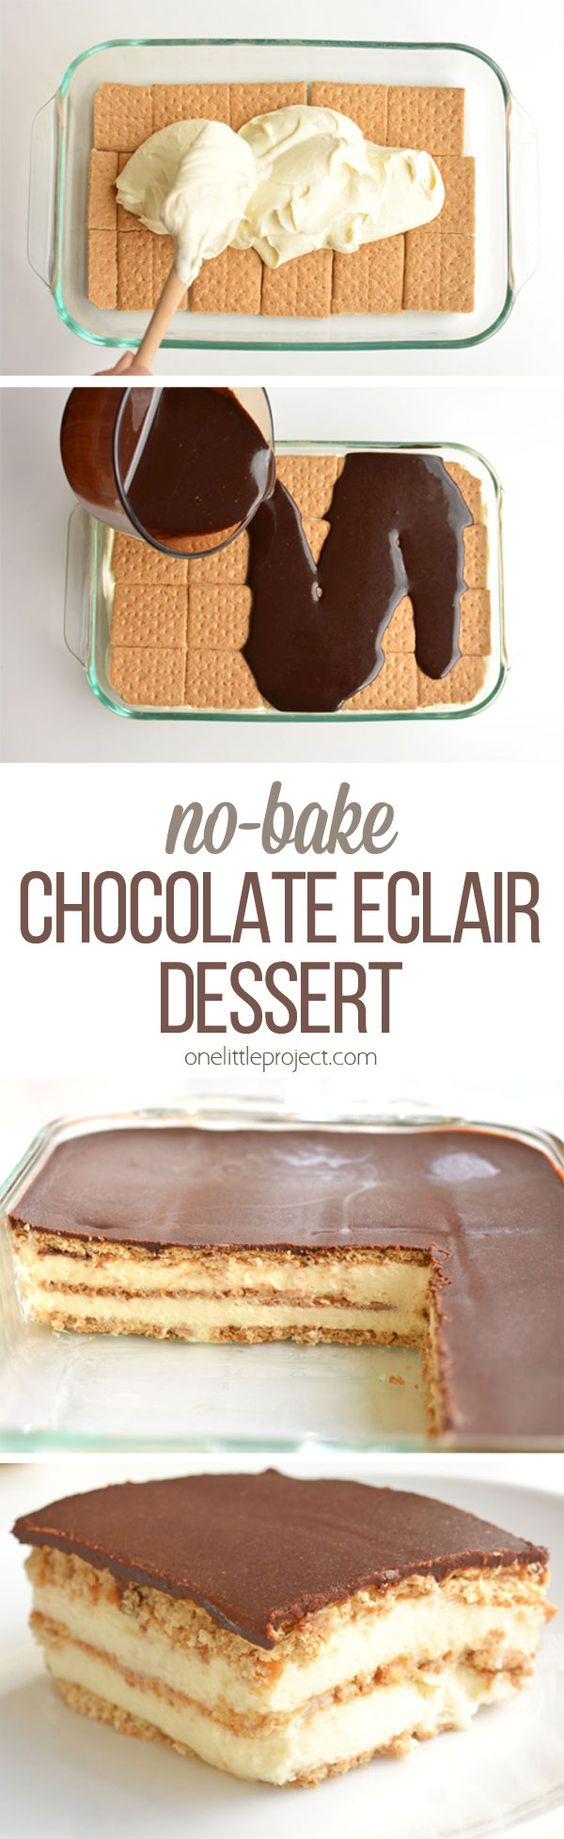 This chocolate eclair cake is such an easy dessert! And it tastes AMAZING with its creamy and delicious layers!! Just like a chocolate eclair, but in a cake. Mmmmm...: